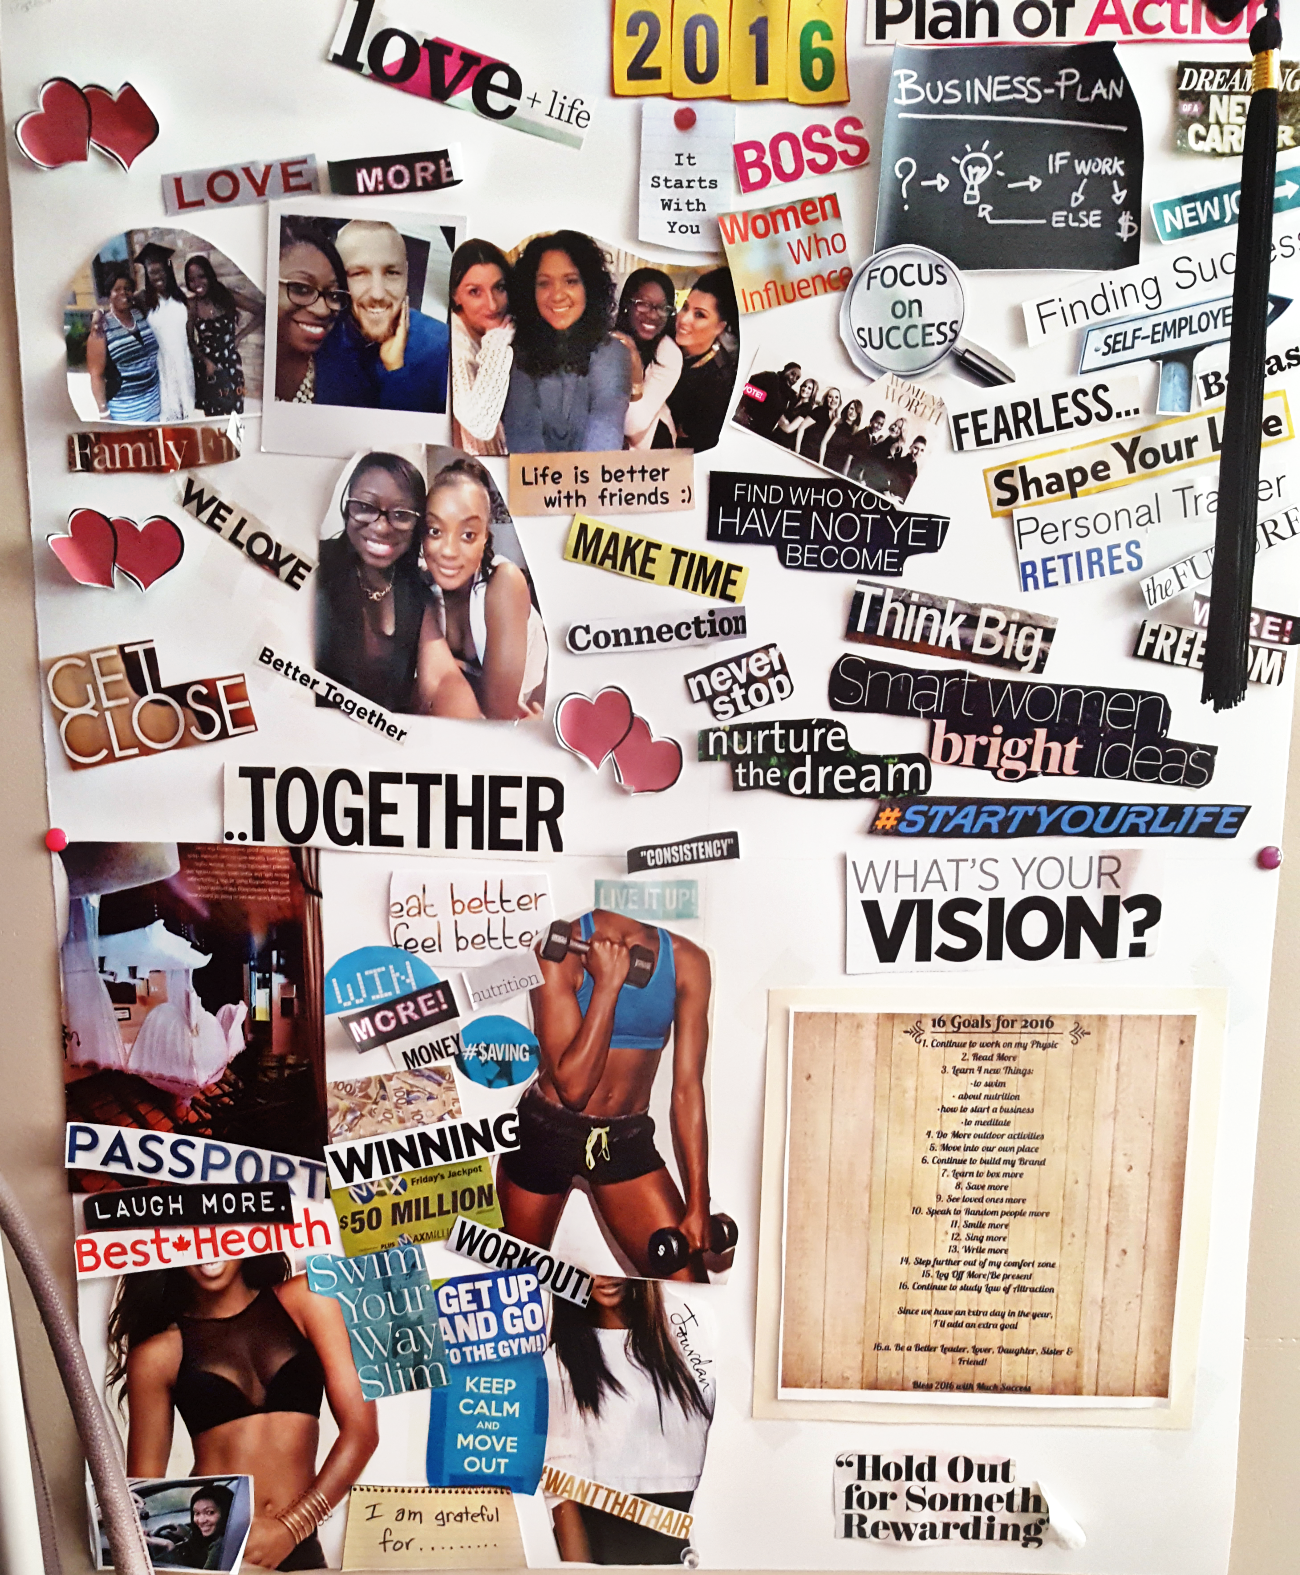 My Vision Board from 2016 on my wall